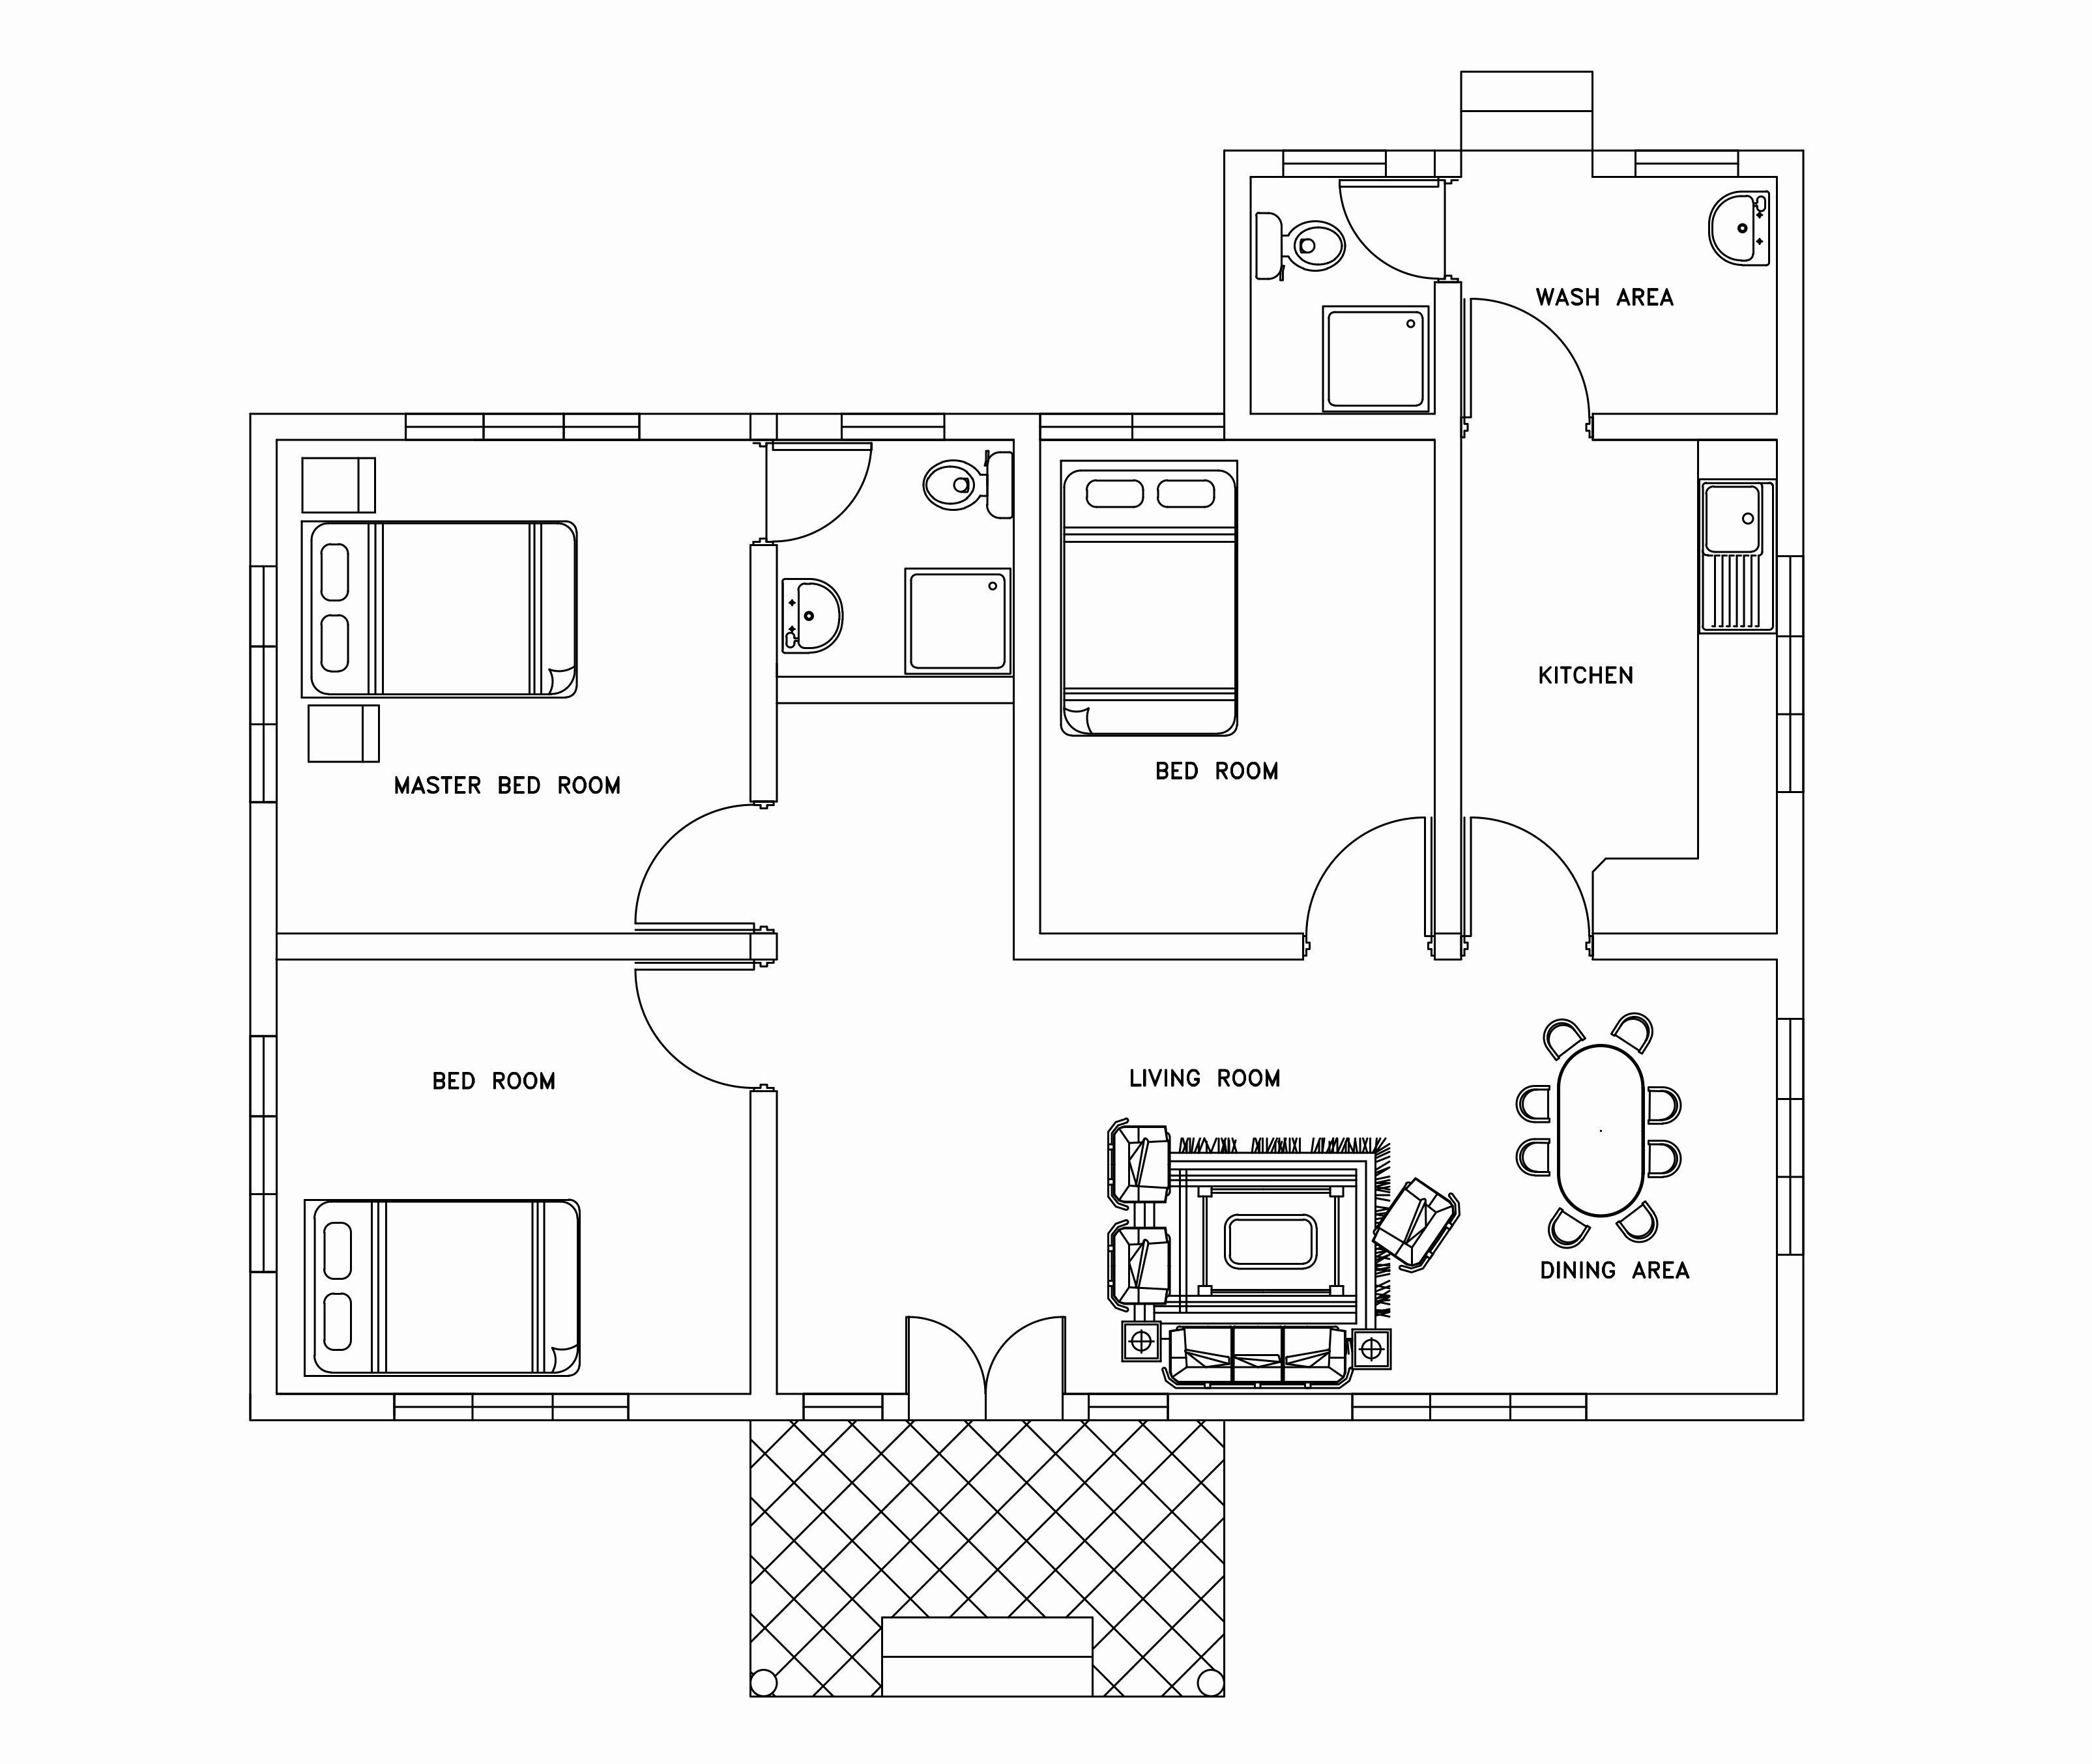 Floor Plan Design Template Unique House Plan Template Awesome House Plans Line Lovely Line In 2020 Floor Plan Design Free House Plans Bedroom House Plans